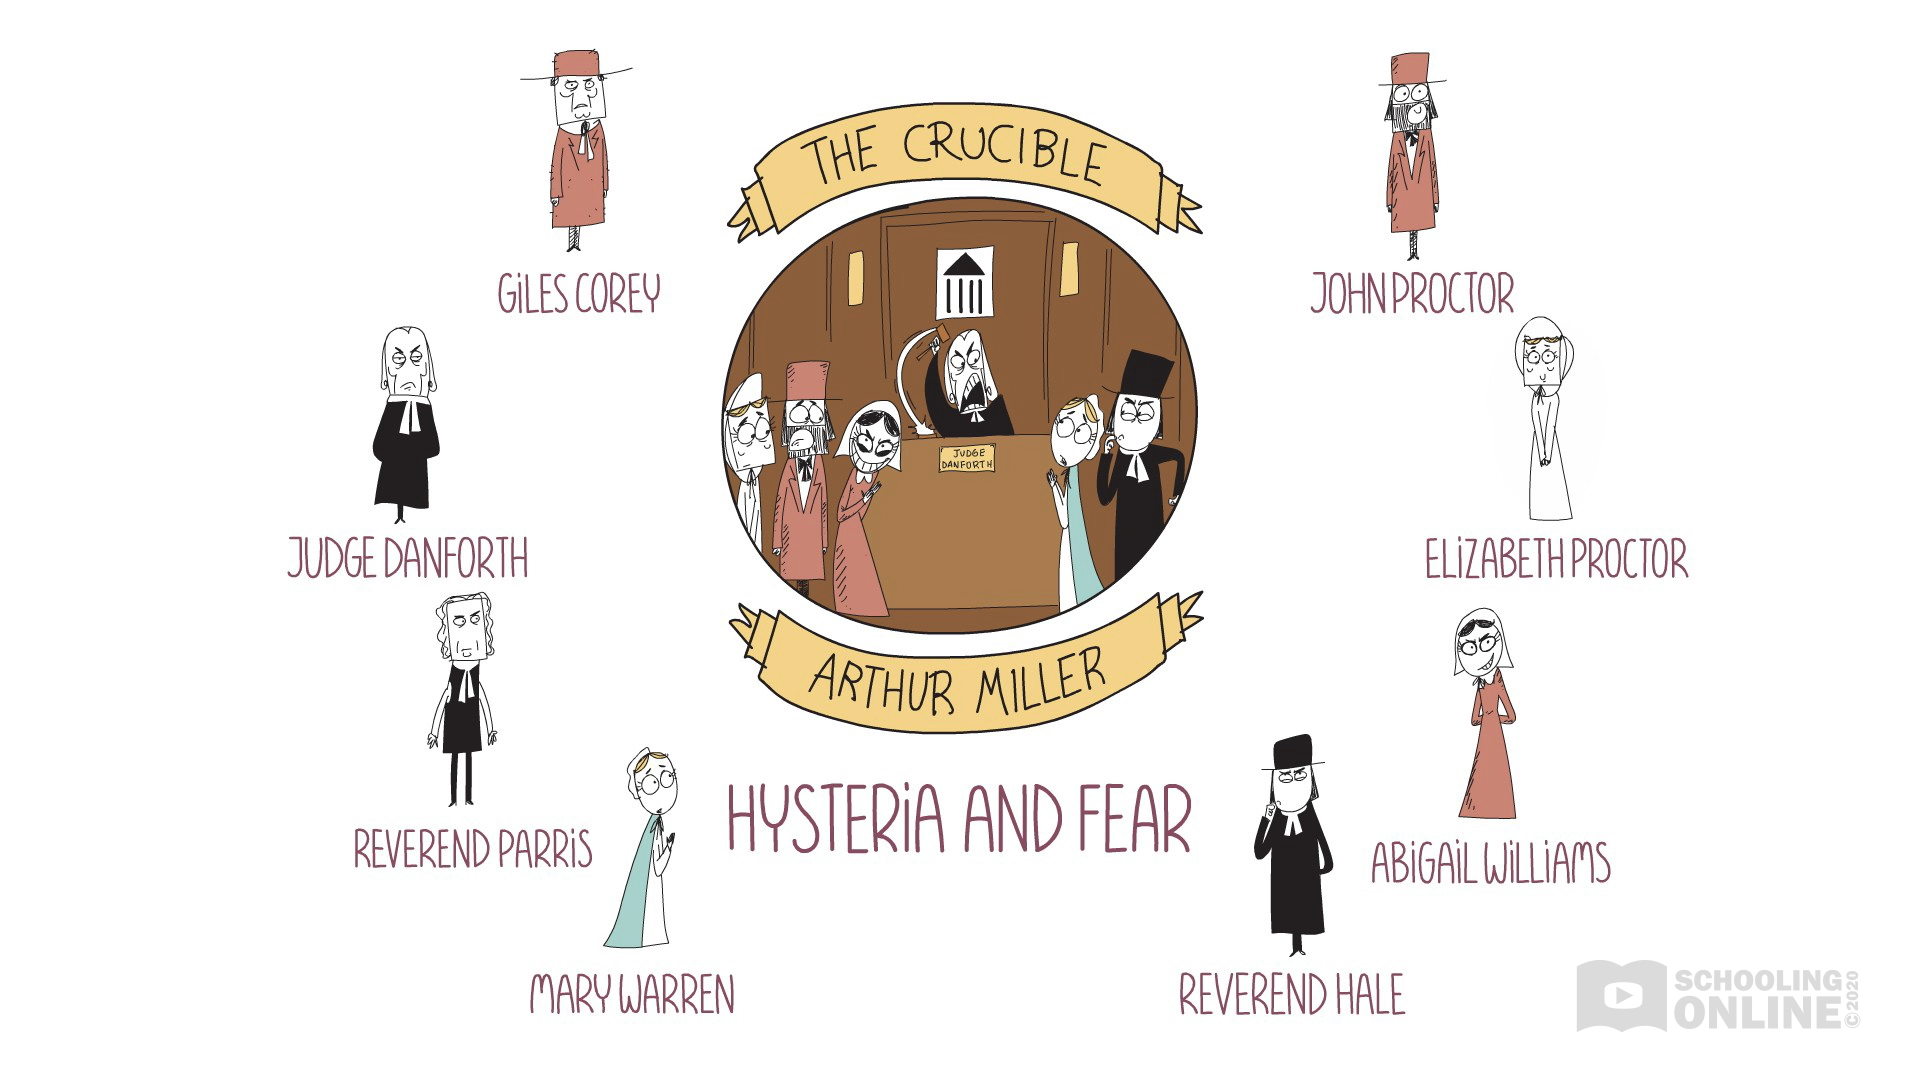 The Crucible - Arthur Miller - Theme of Hysteria and Fear - Destroying Drama Series